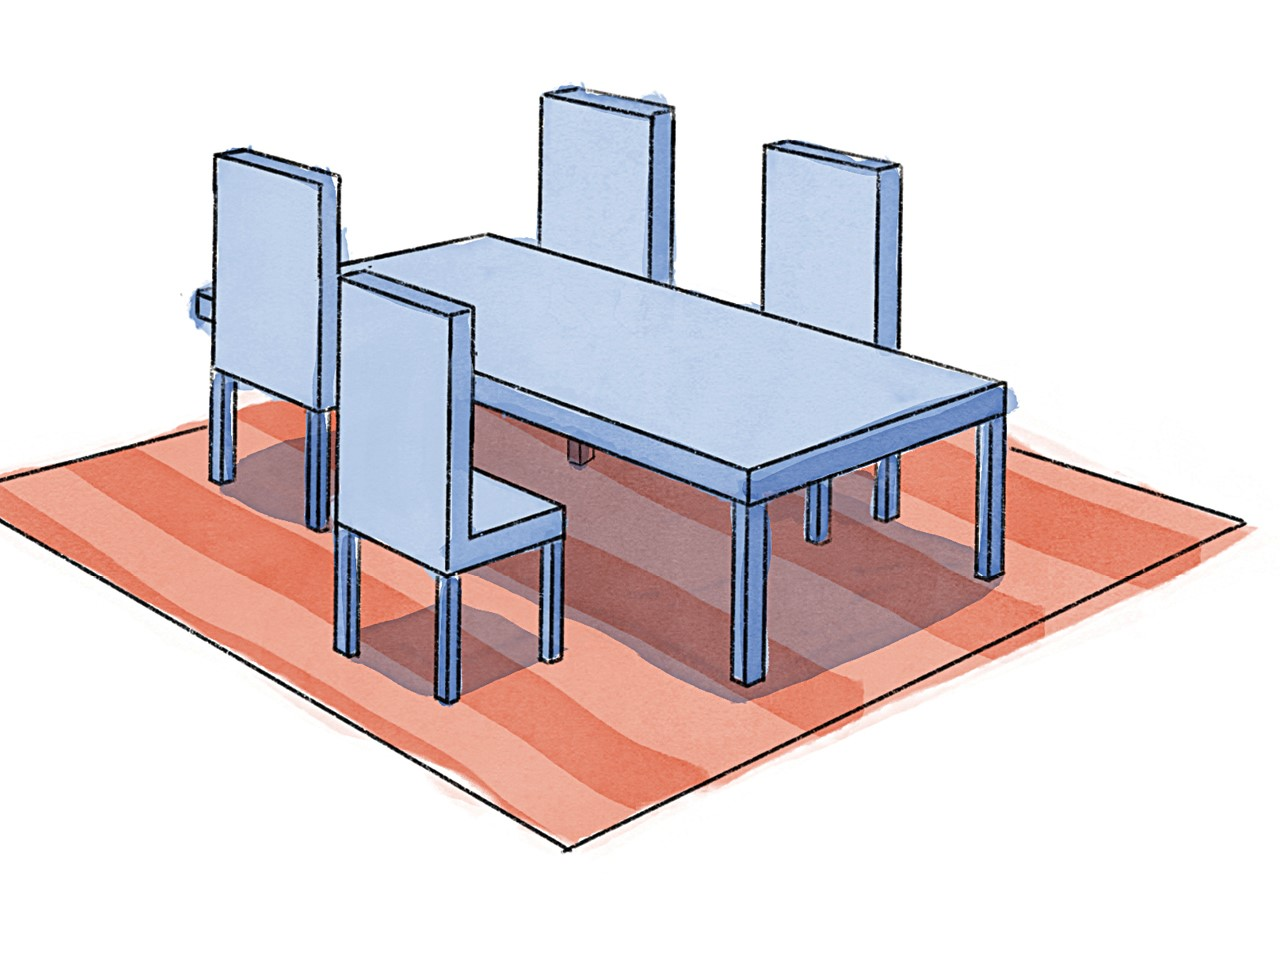 rug size buying guide illustration of a blue table with four blue chairs on a peach striped rug